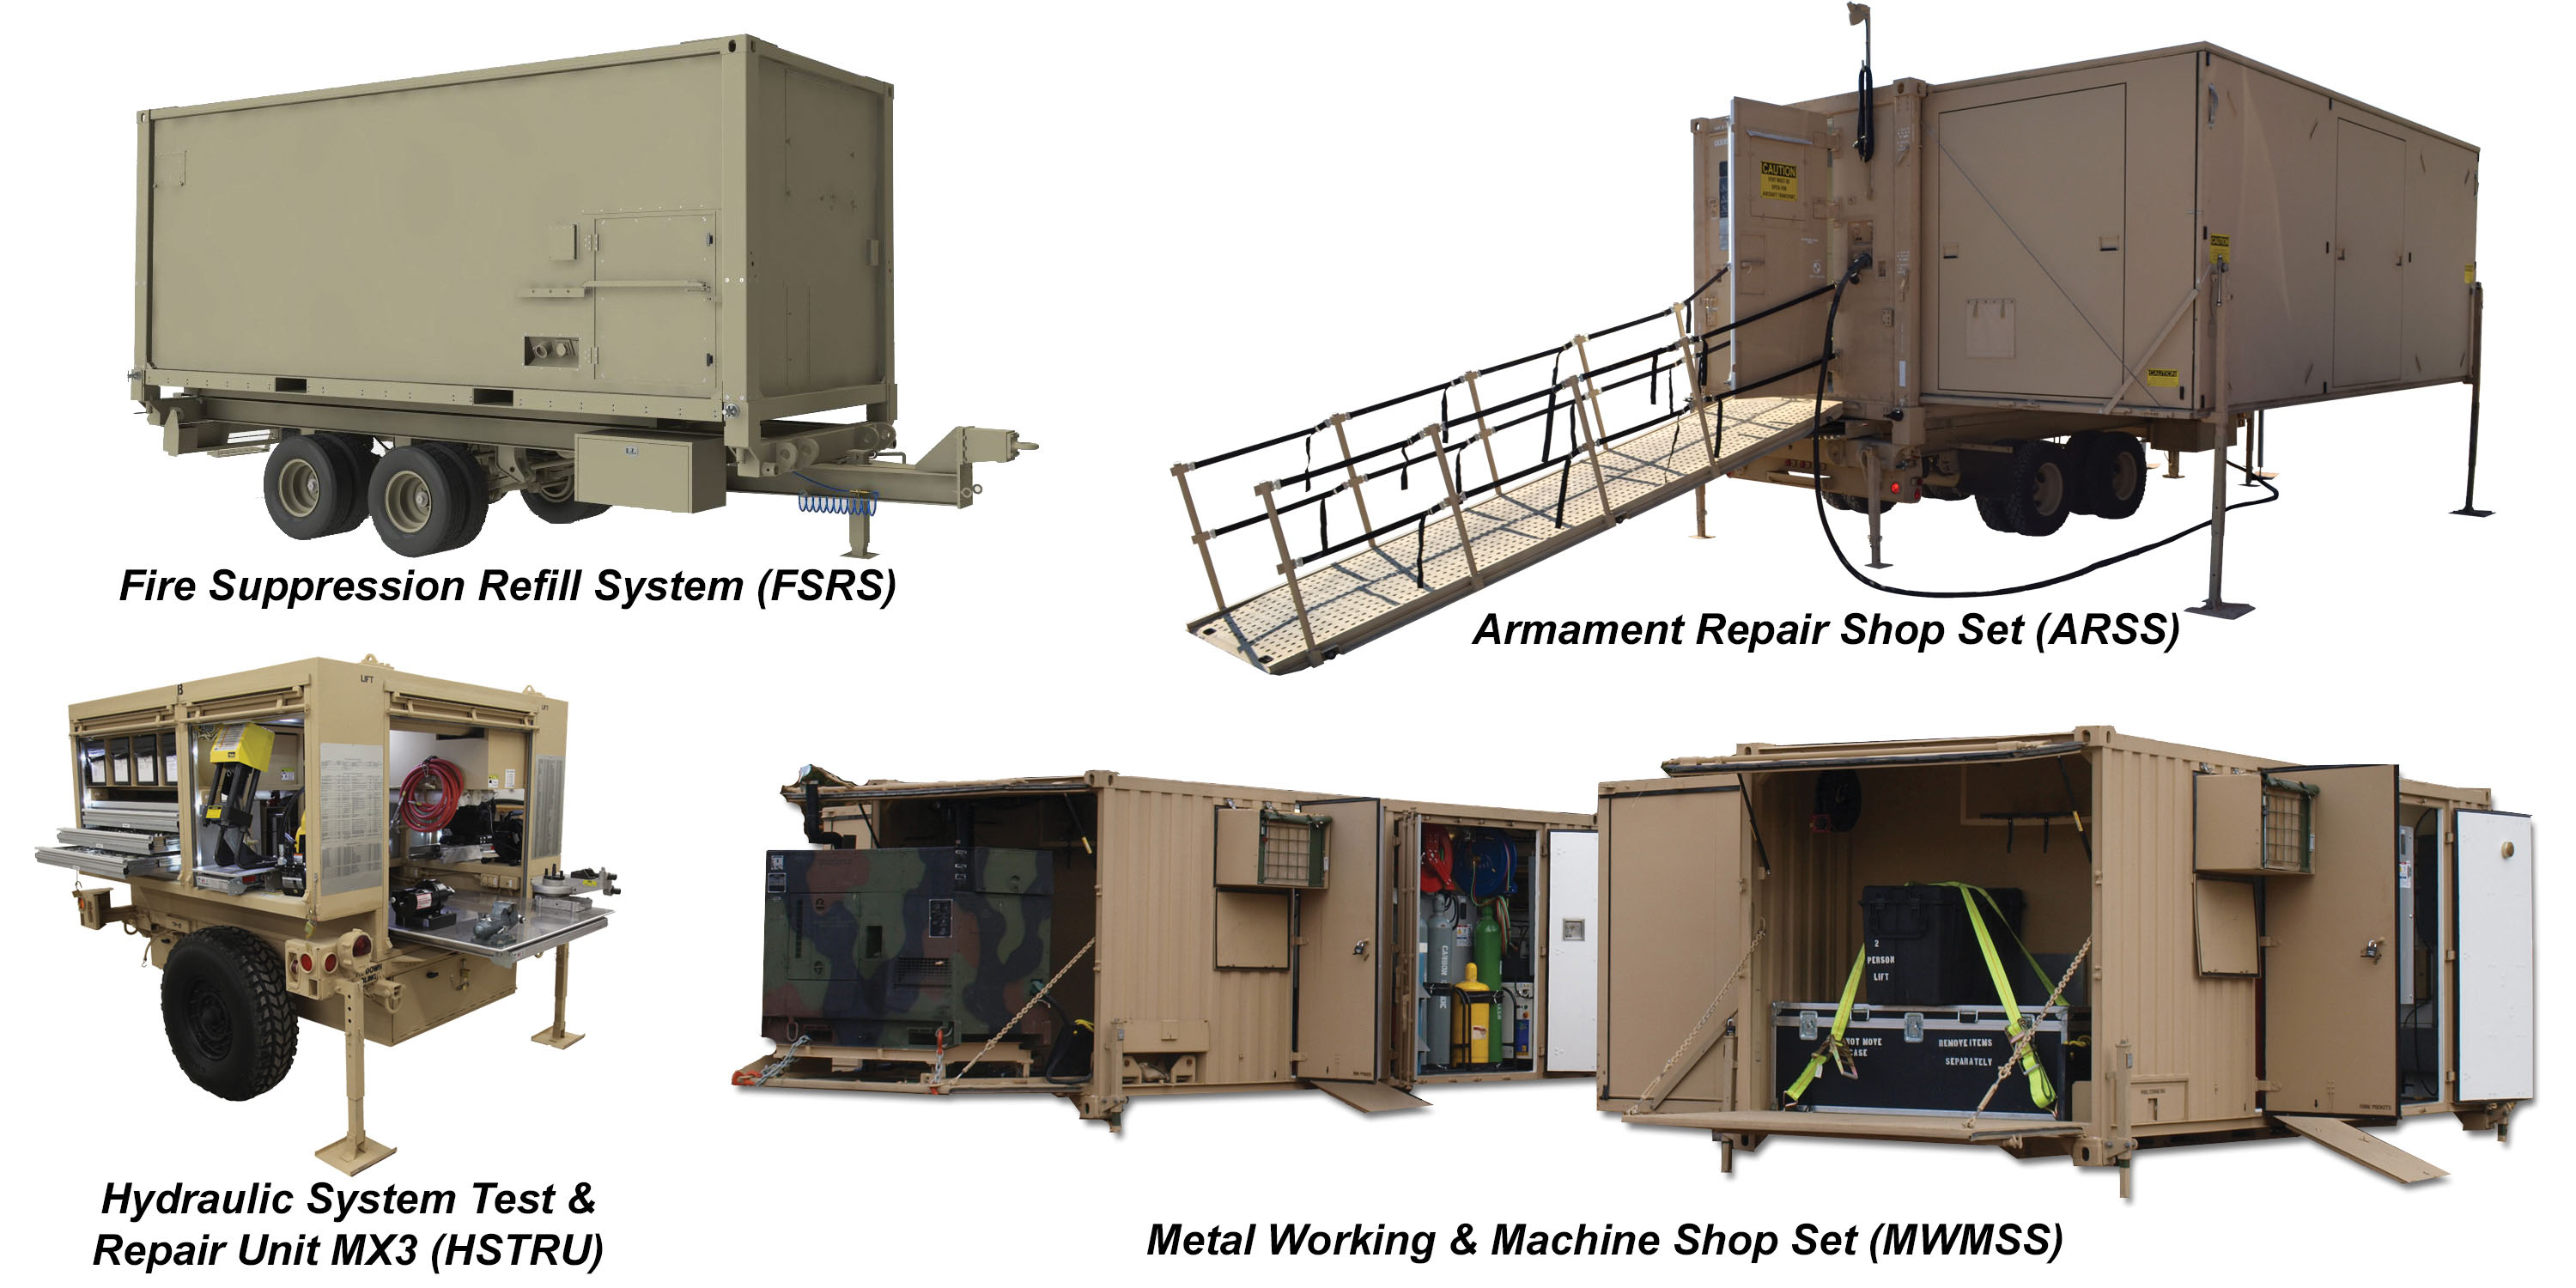 Mobile Maintenance Equipment Systems (MMES)